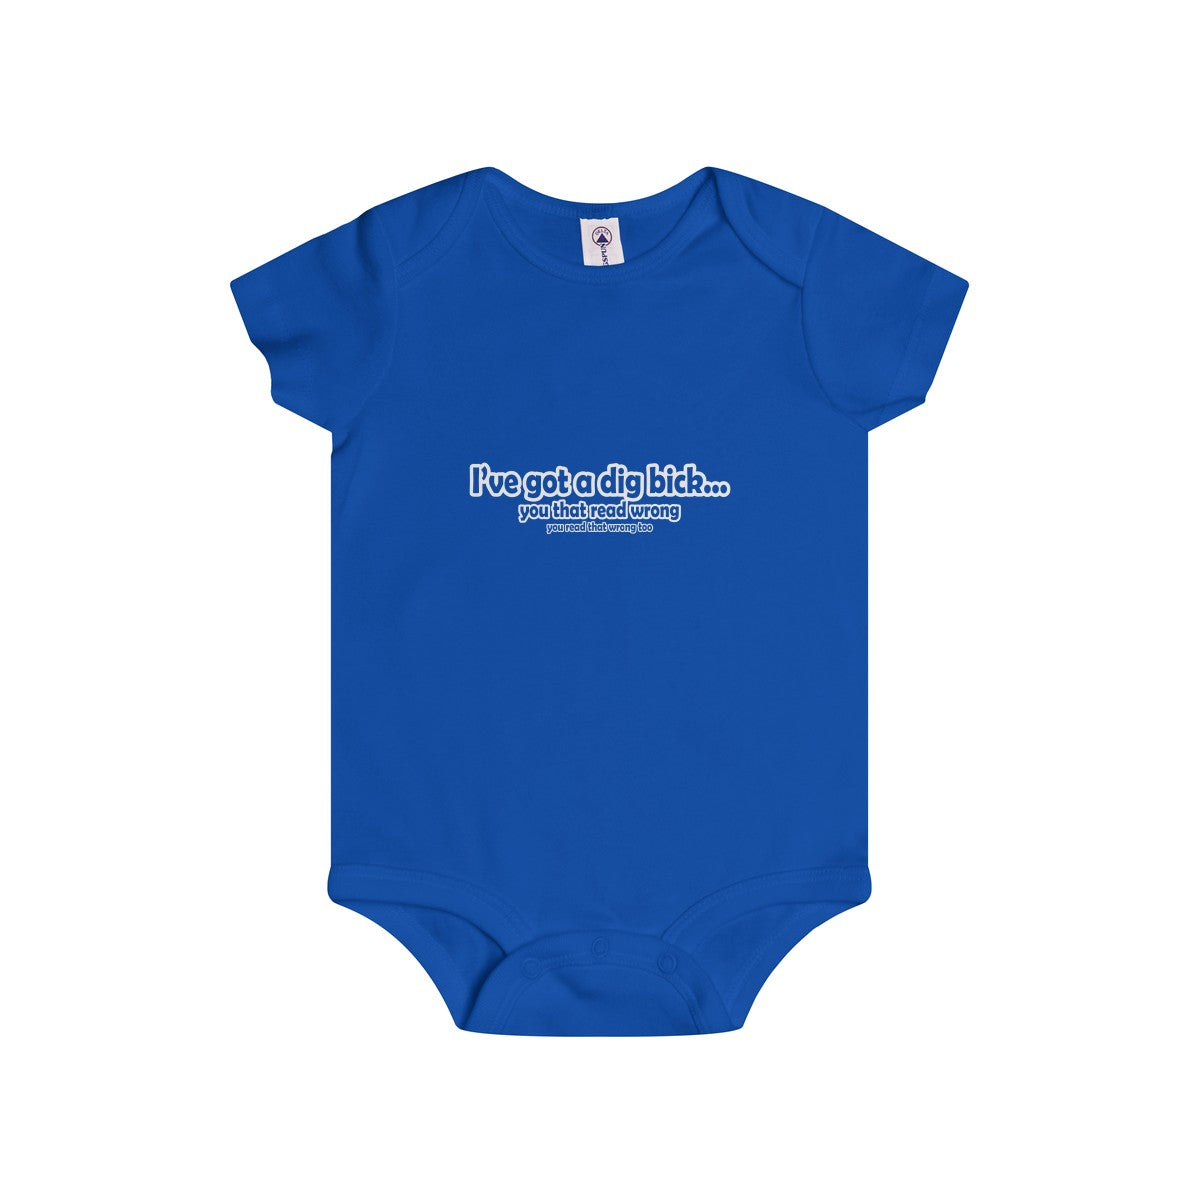 I've got a dig bick you read that wrong infant's unisex onesie Nerdedness